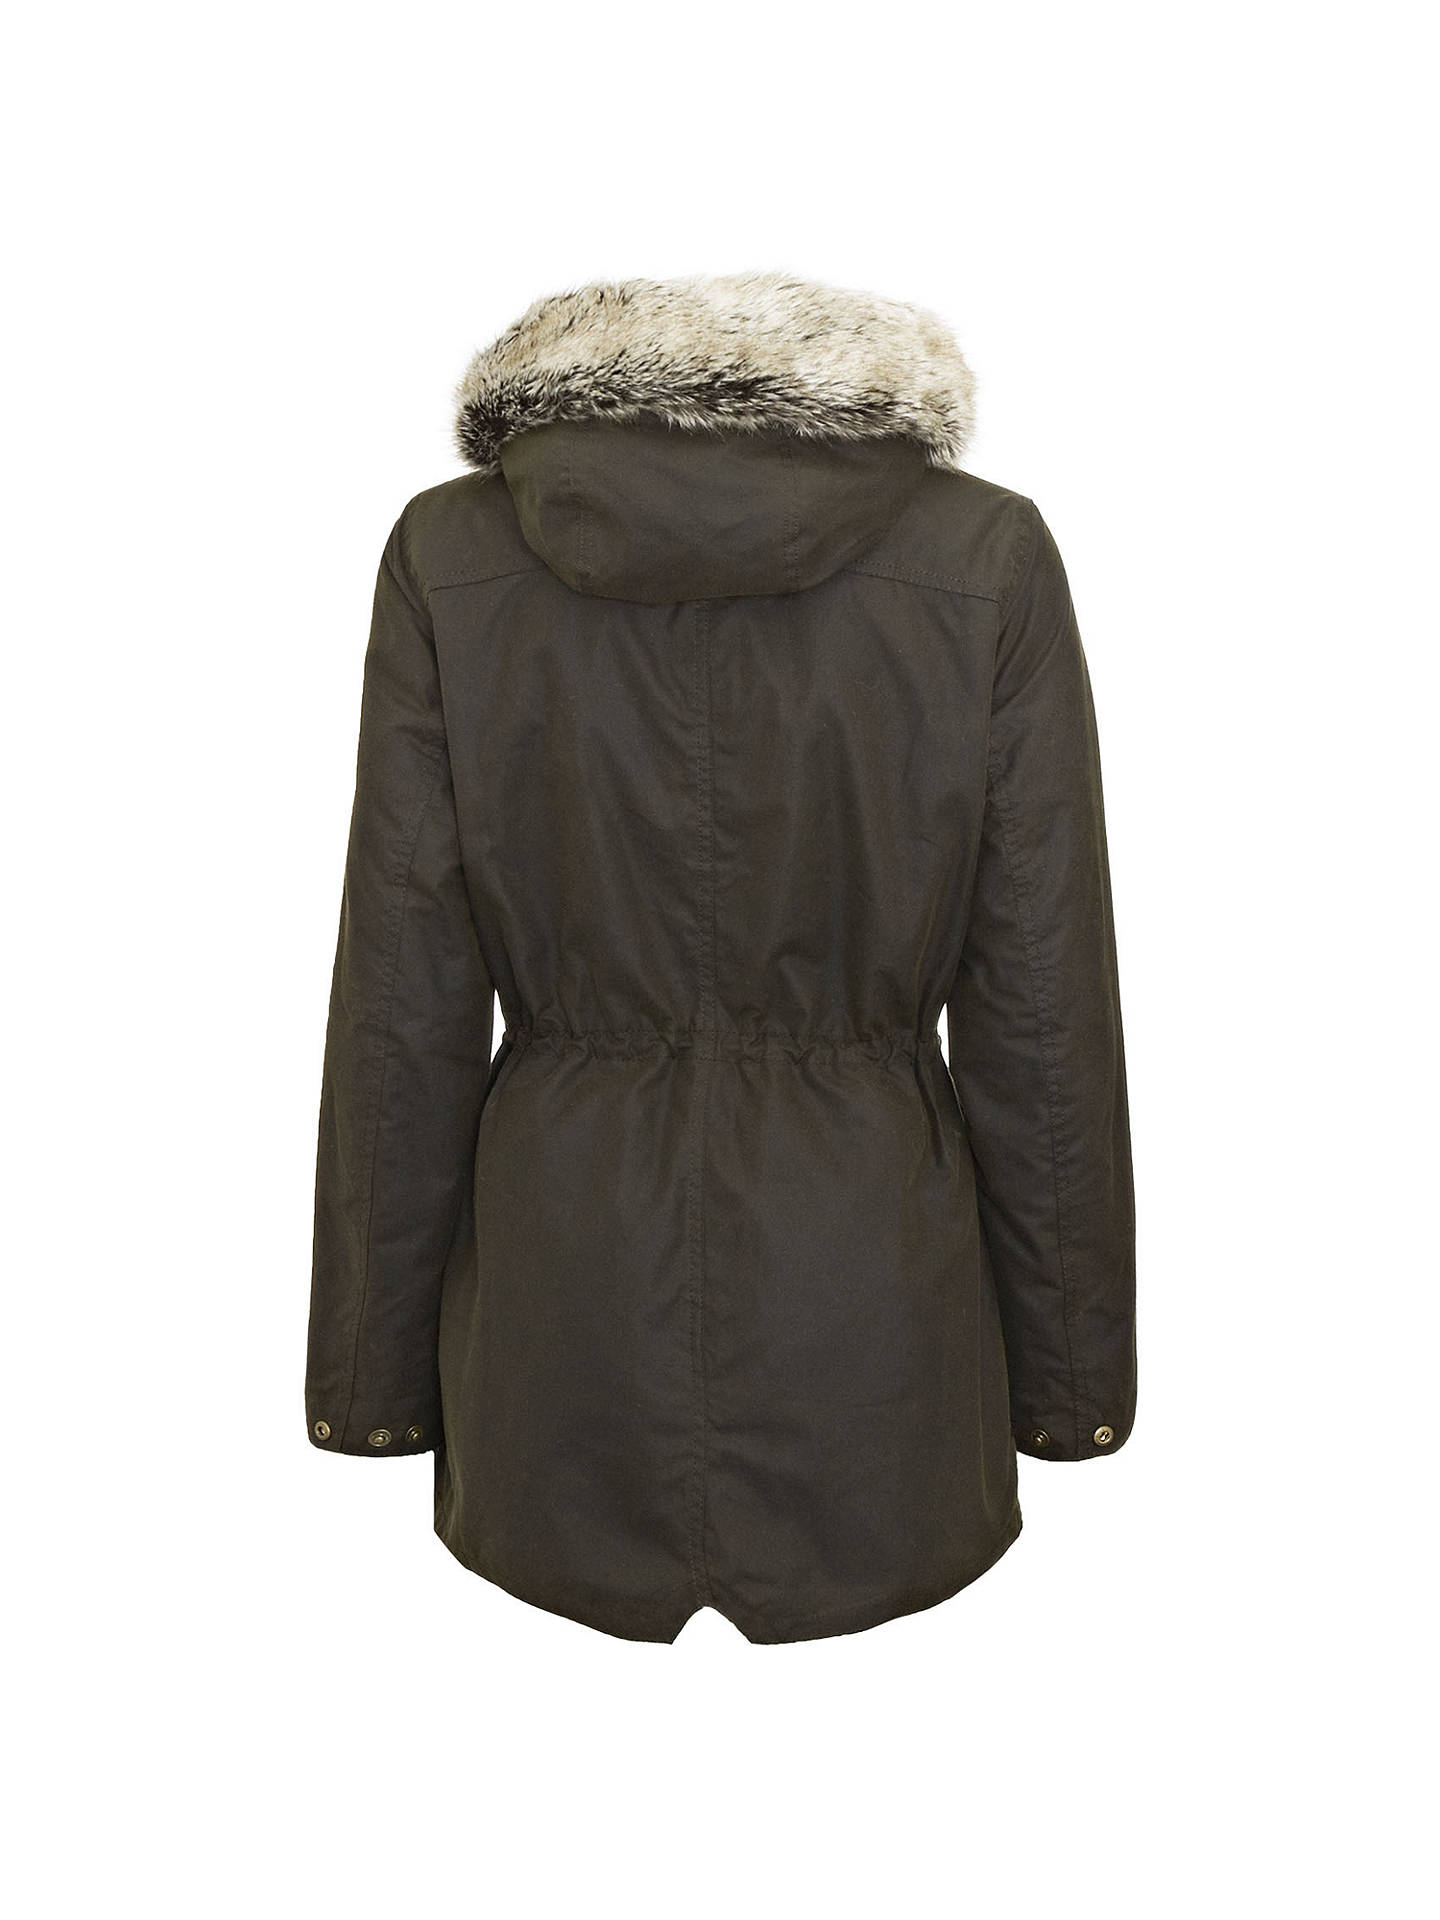 Buy Barbour Kelsall Waxed Hooded Jacket, Olive, 8 Online at johnlewis.com